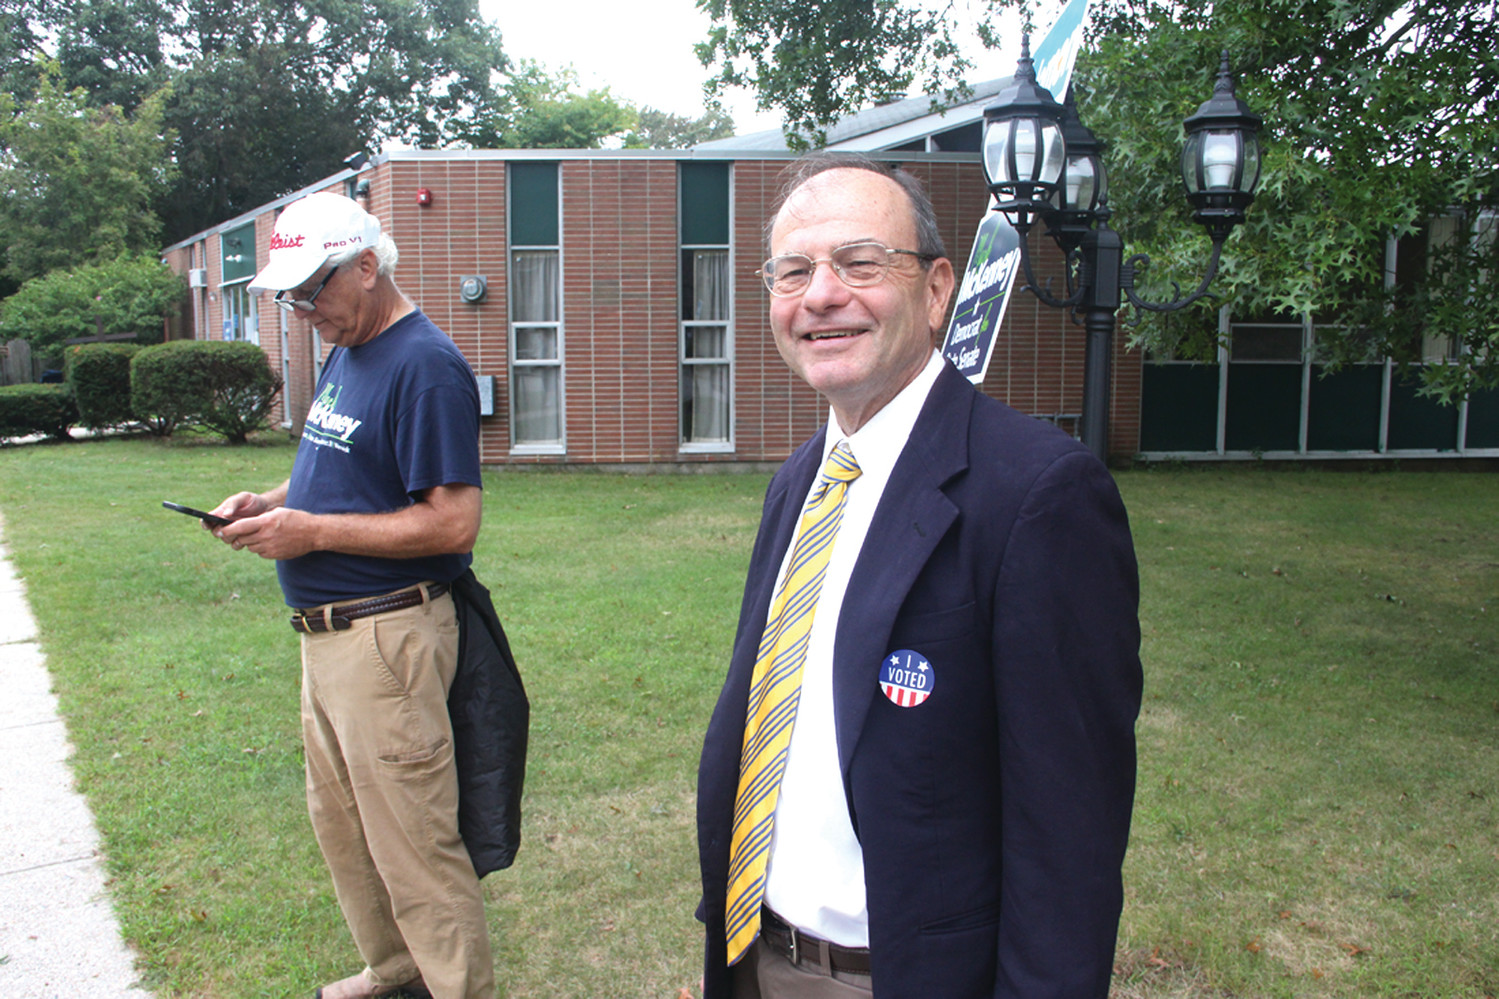 GREETING VOTERS: Mayoral candidate Gerald Carbone was found outside the Warwick Neck poll at Christian Heritage Church saying good morning to voters.